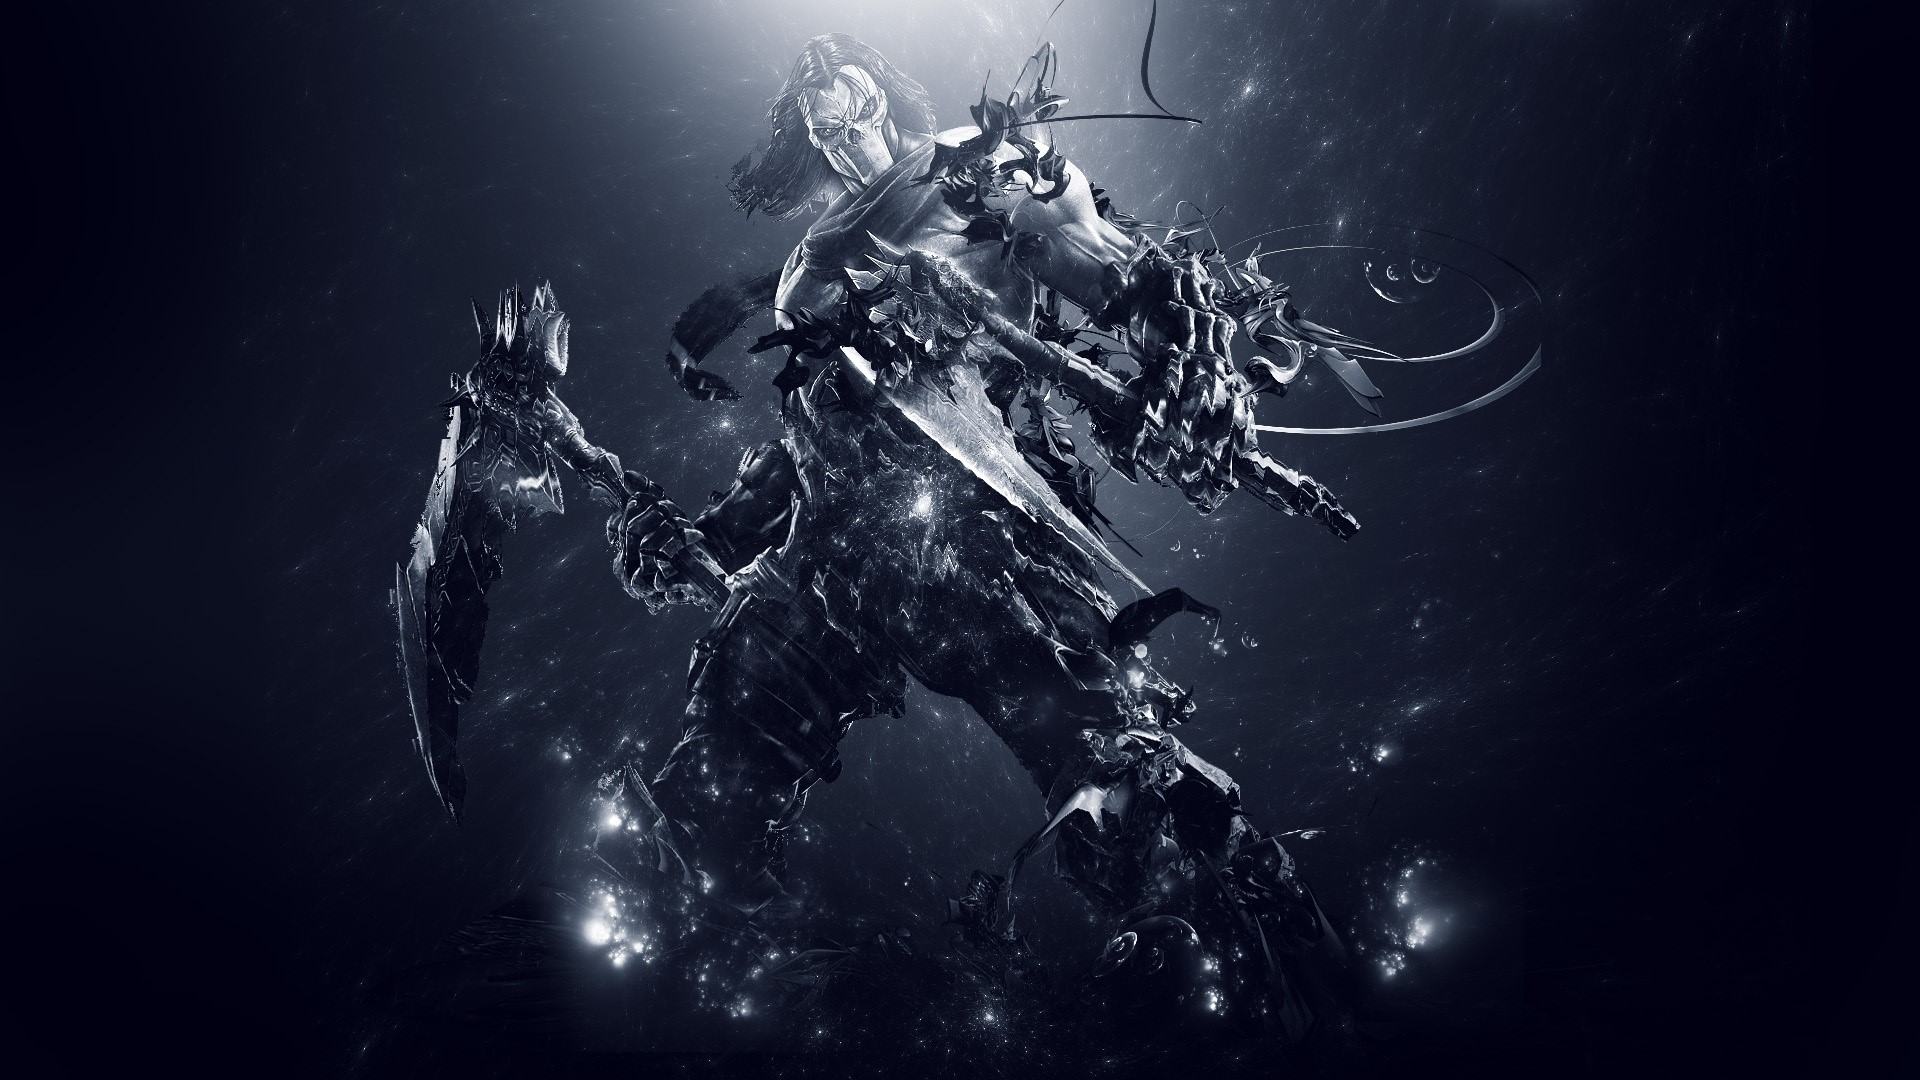 Wallpaper Darksiders 2